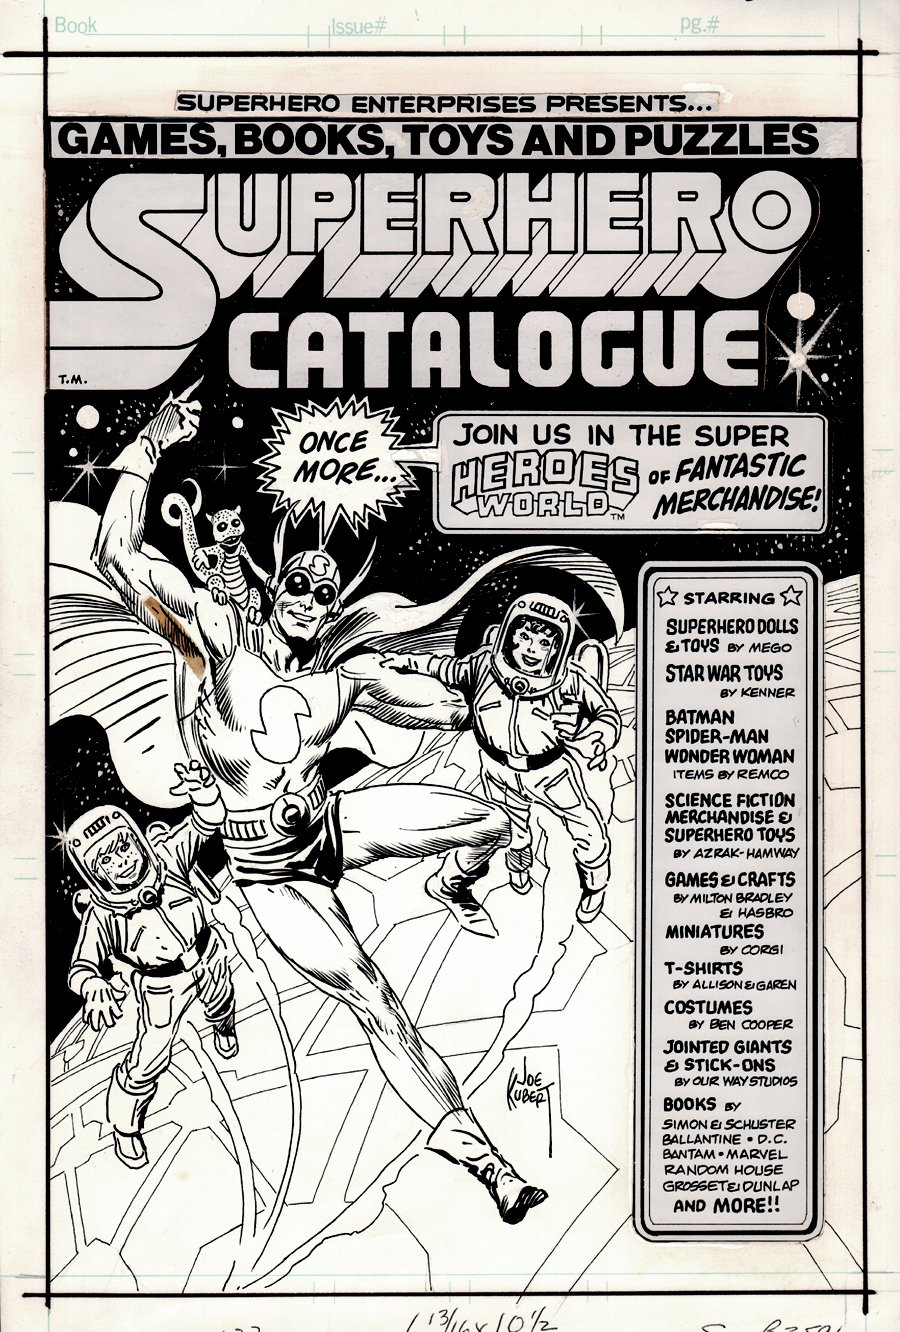 Superhero Catalogue #3b Cover Art (VERY FIRST MENTION OF STAR WARS TOYS) 1976